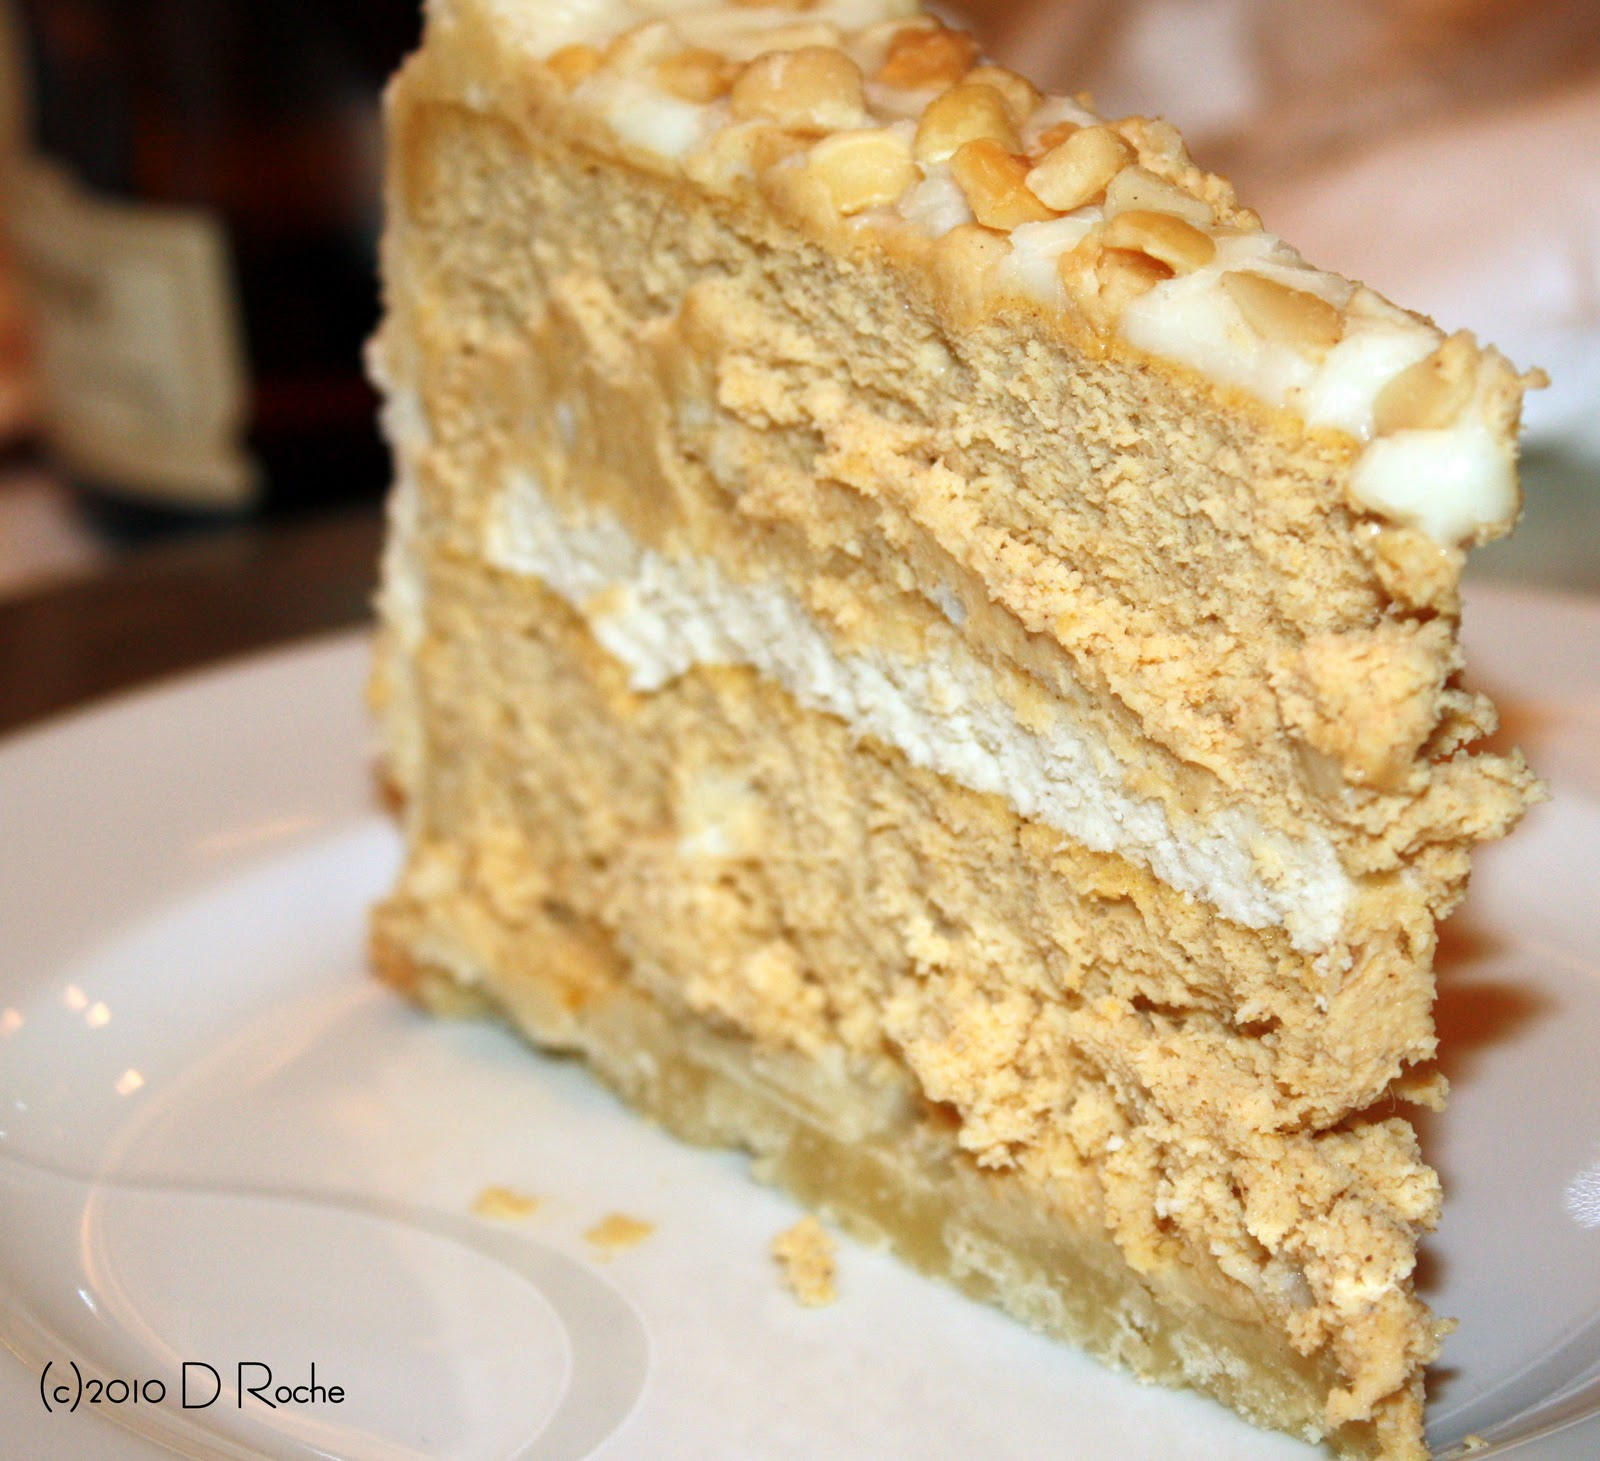 ... the kitchen with Nick ...: Double Layer Pumpkin Cheesecake - let